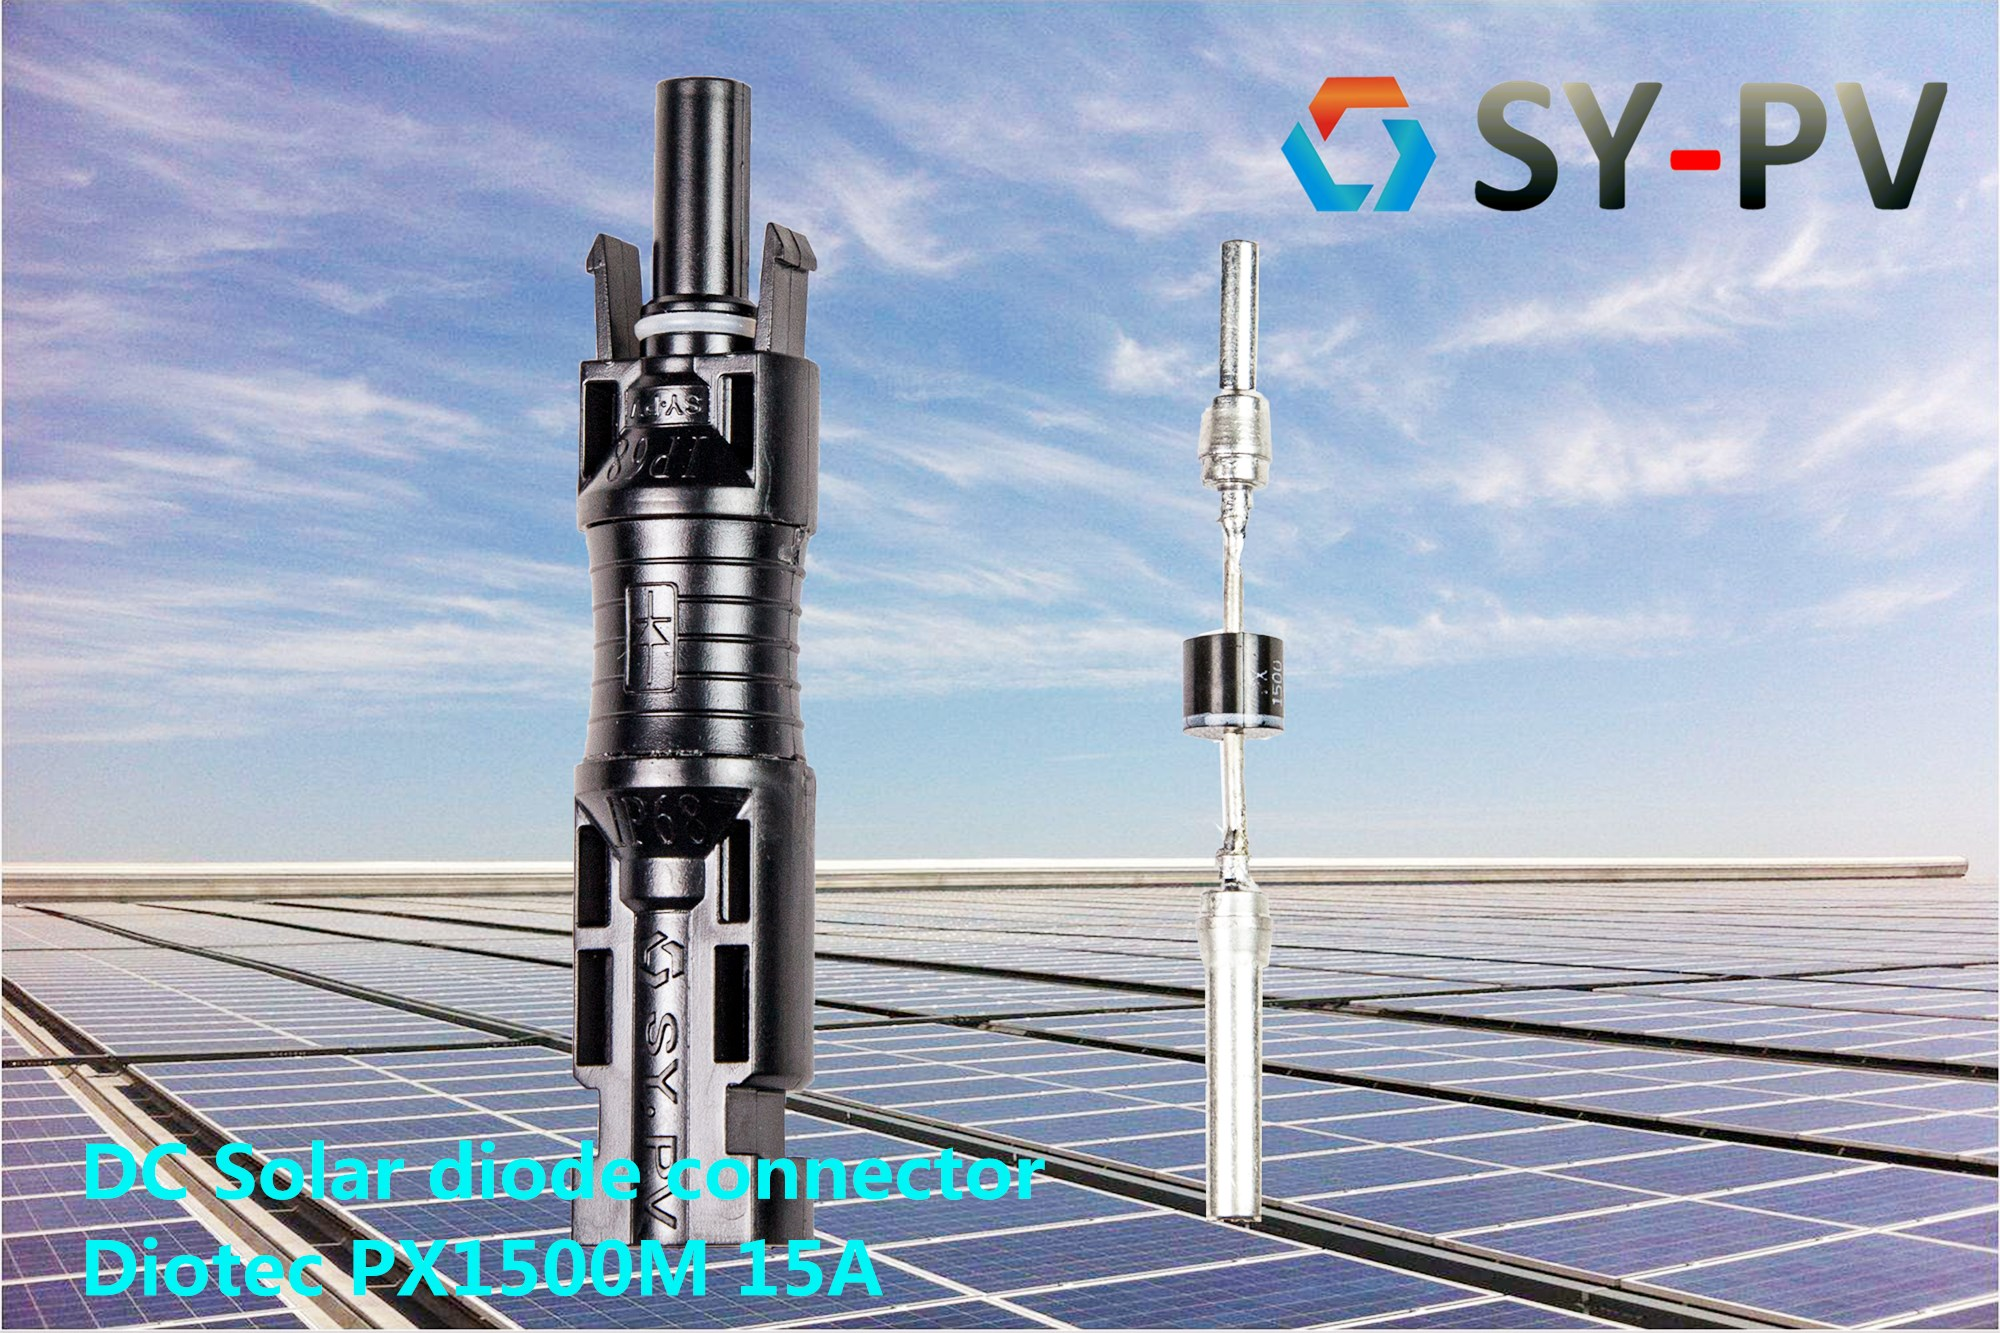 Solar pv DC MC4 Diode Connector manufacturer in China 15A 20A 25A PX1500M IP68 Solar pv DC MC4 Diode Connector manufacturer in China 15A 20A PX1500M